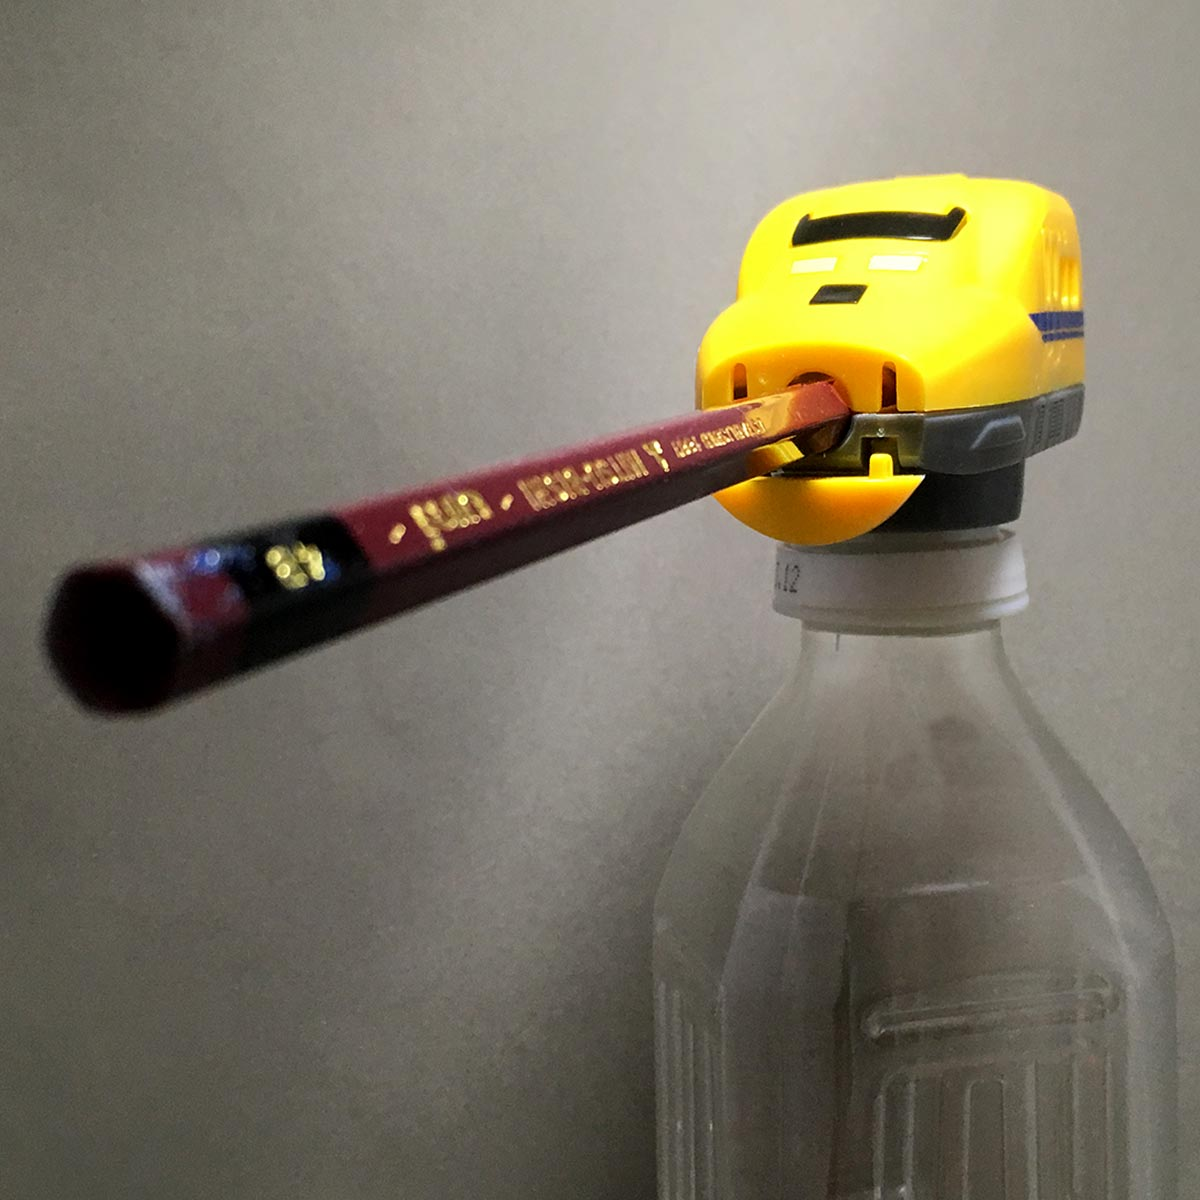 Doctor Yellow Pencil Sharpener - bottle and pencil